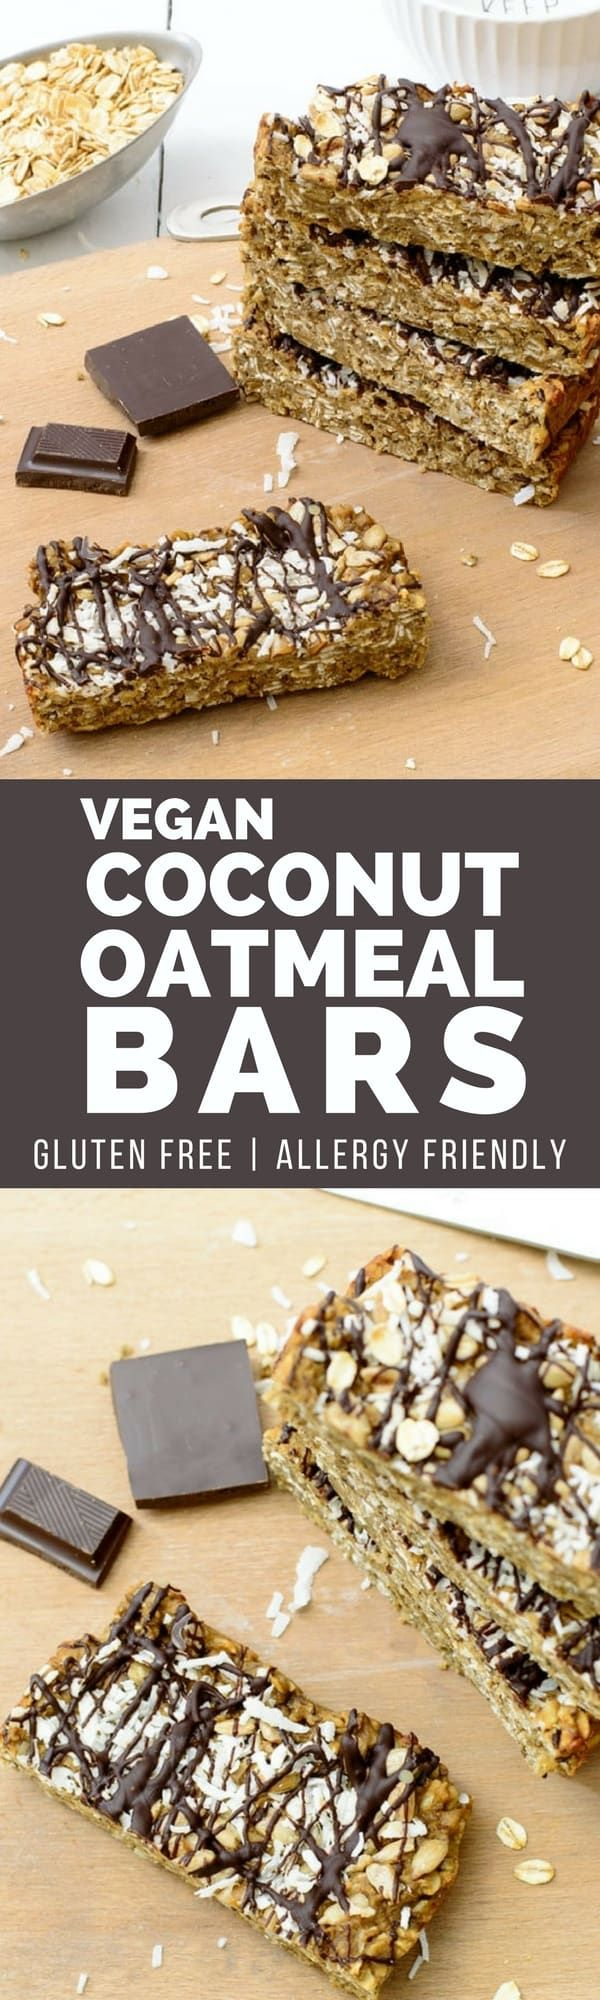 Vegan coconut oatmeal bars are ready in under 20 minutes. Easy to make, allergy friendly, gluten free and vegan. The perfect for after school snack, on-the-go morning breakfast or snack! | bitesofwellness.com #glutenfree #vegan #allergyfriendly